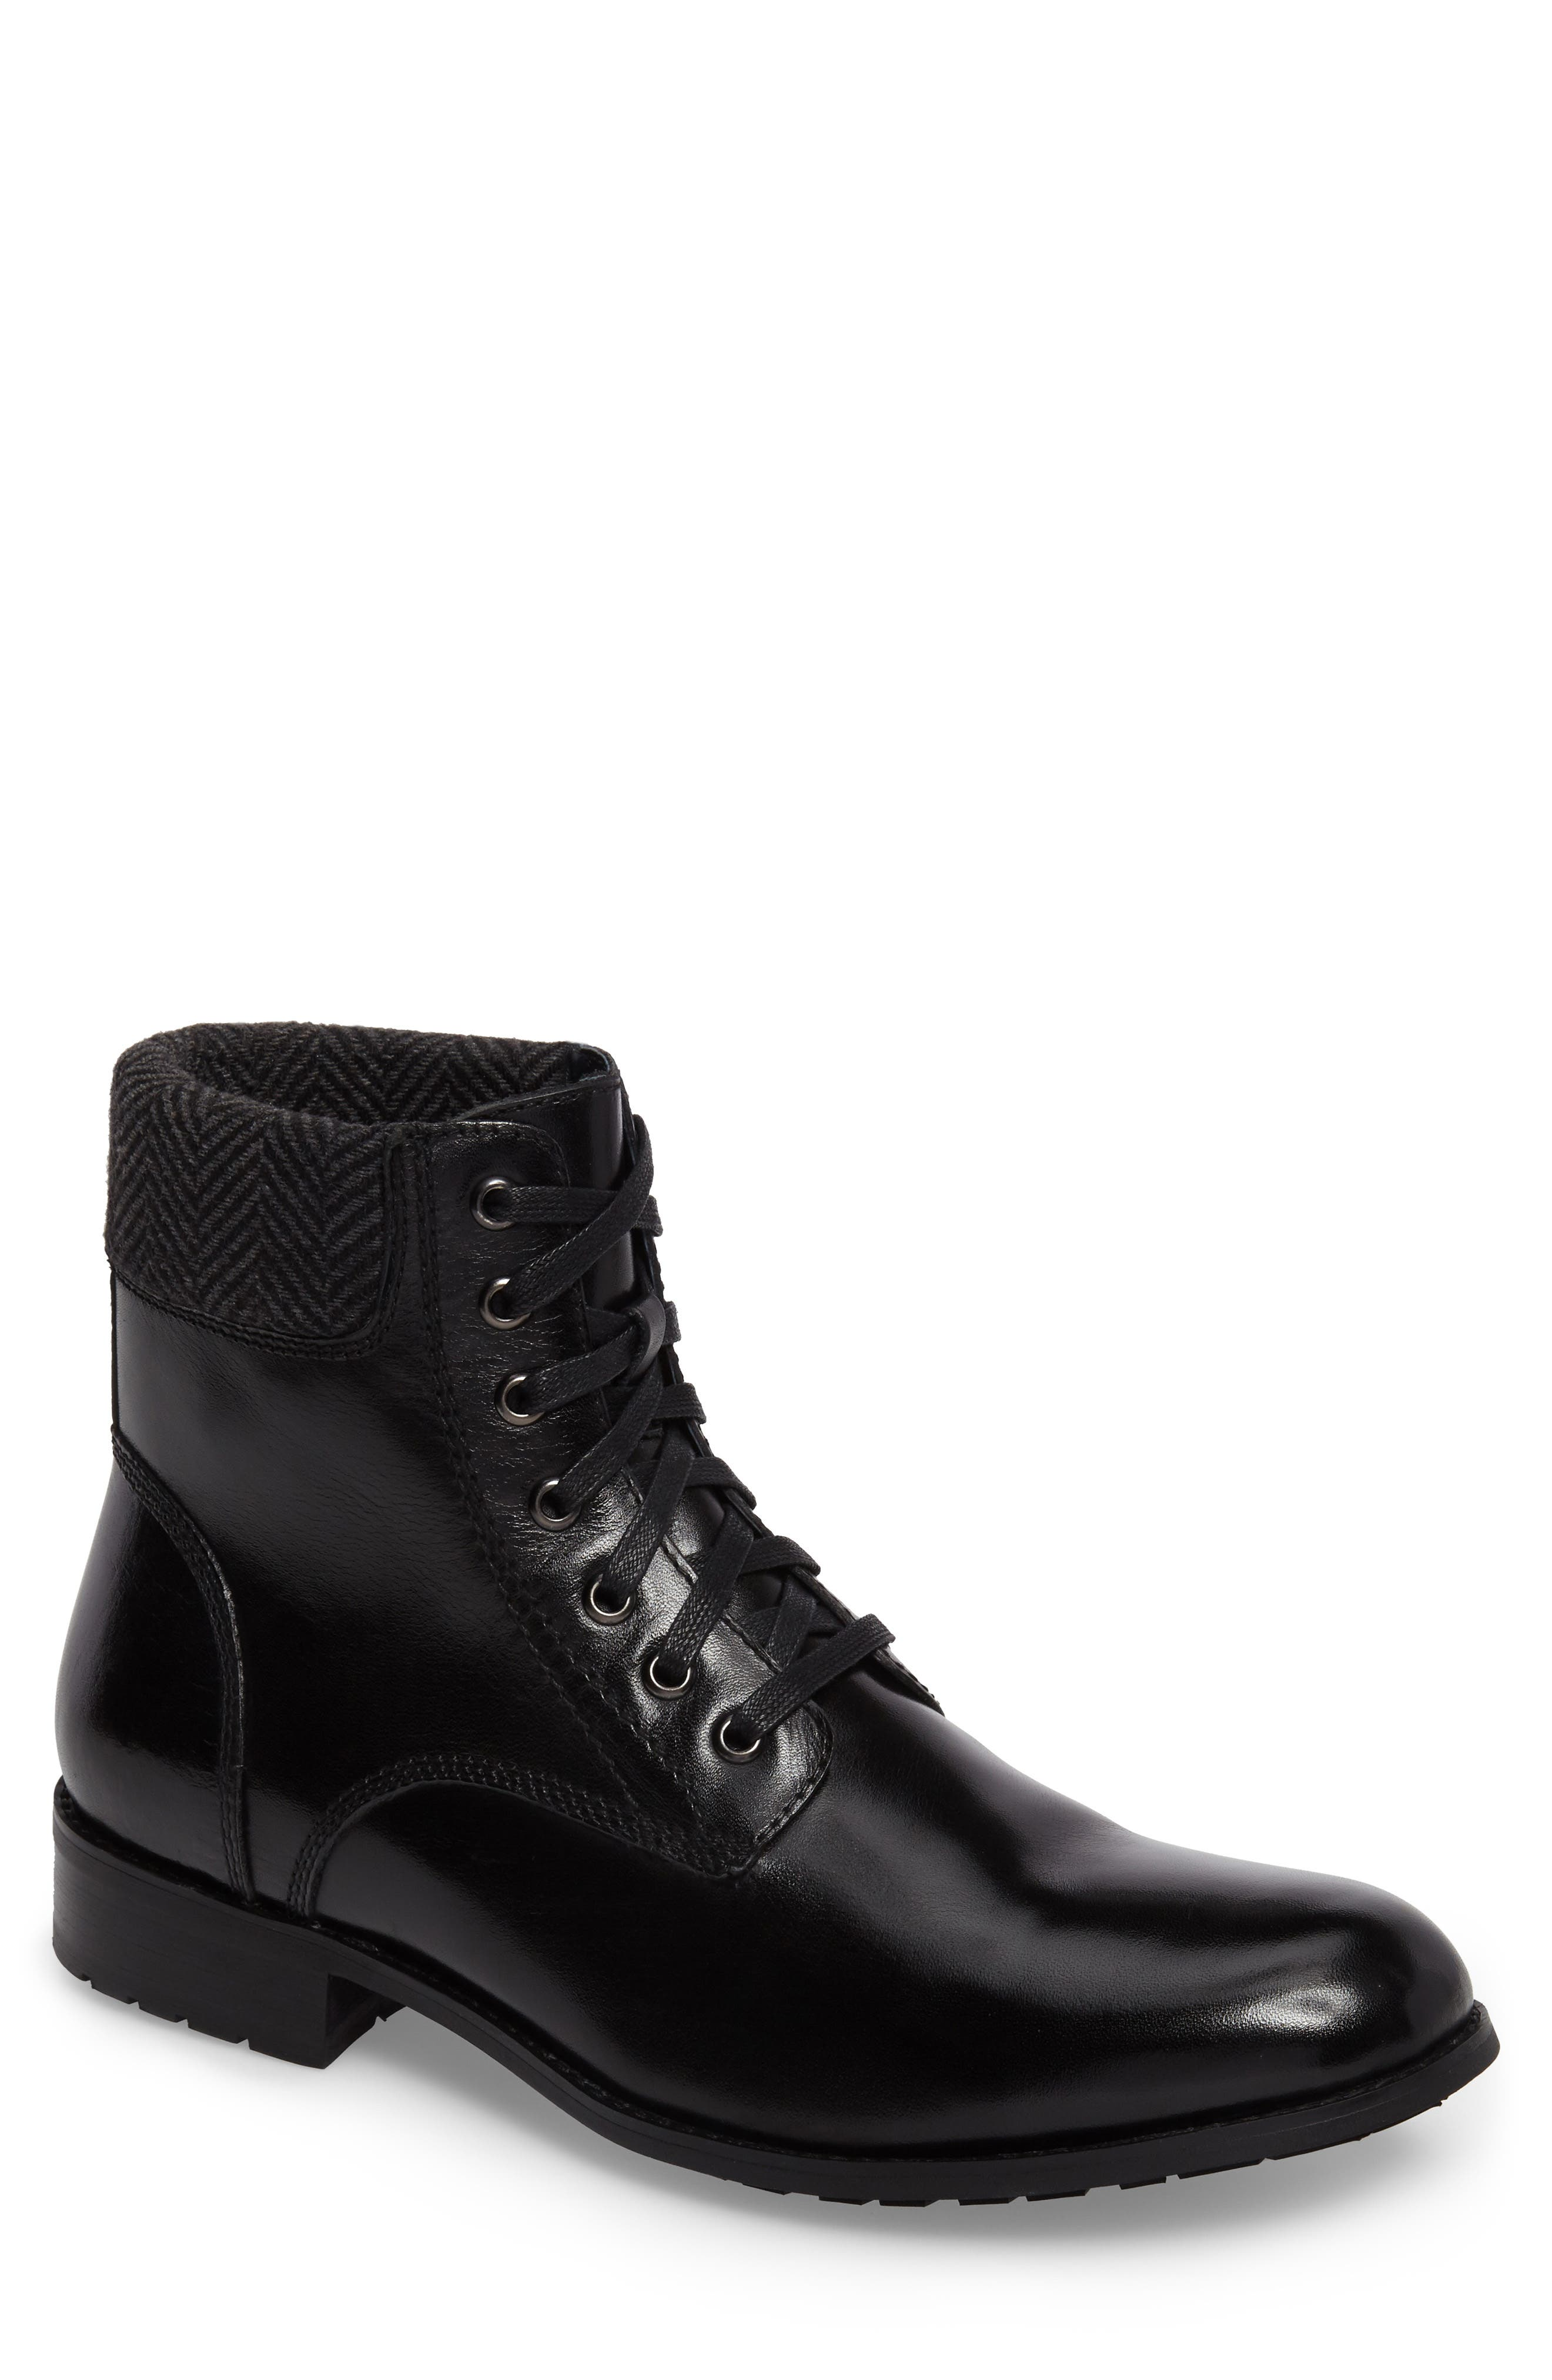 Saar Plain Toe Boot,                         Main,                         color, 001